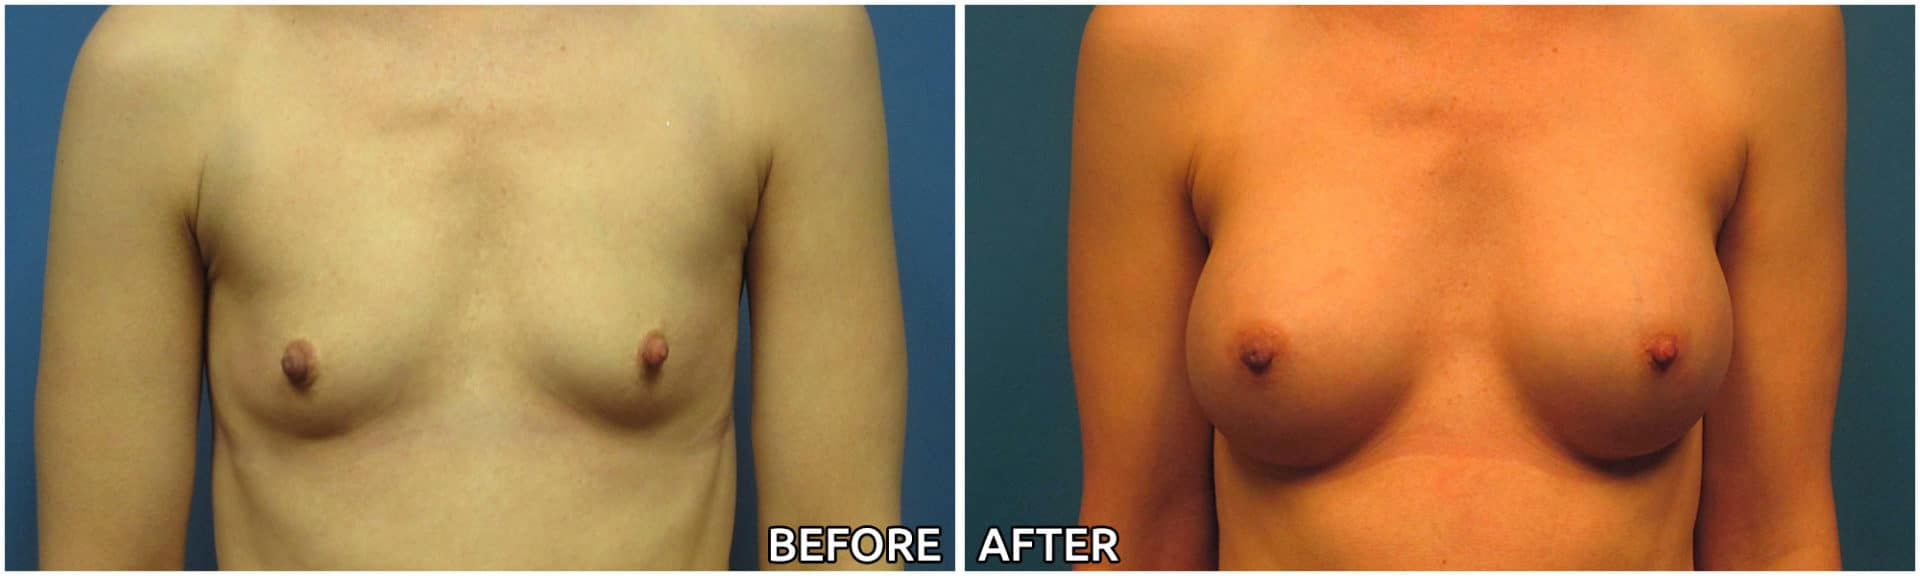 breast-augmentation41